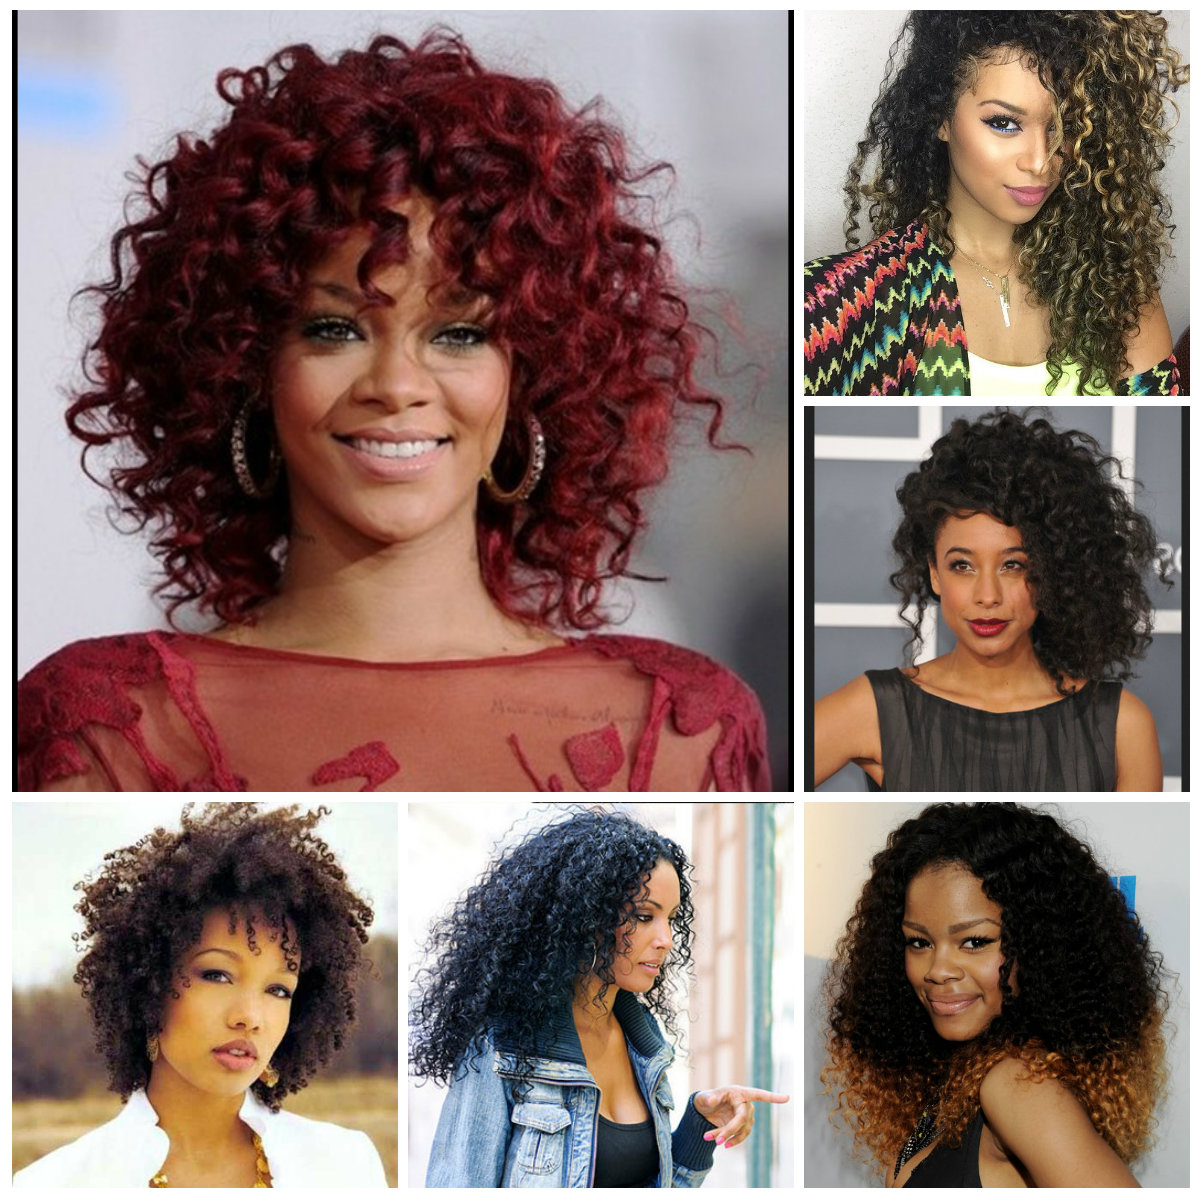 Hair Color : Black Curly Short Hairstyles Ideas Hair Styles Braids With 2018 Medium Haircuts For Black Curly Hair (View 9 of 20)